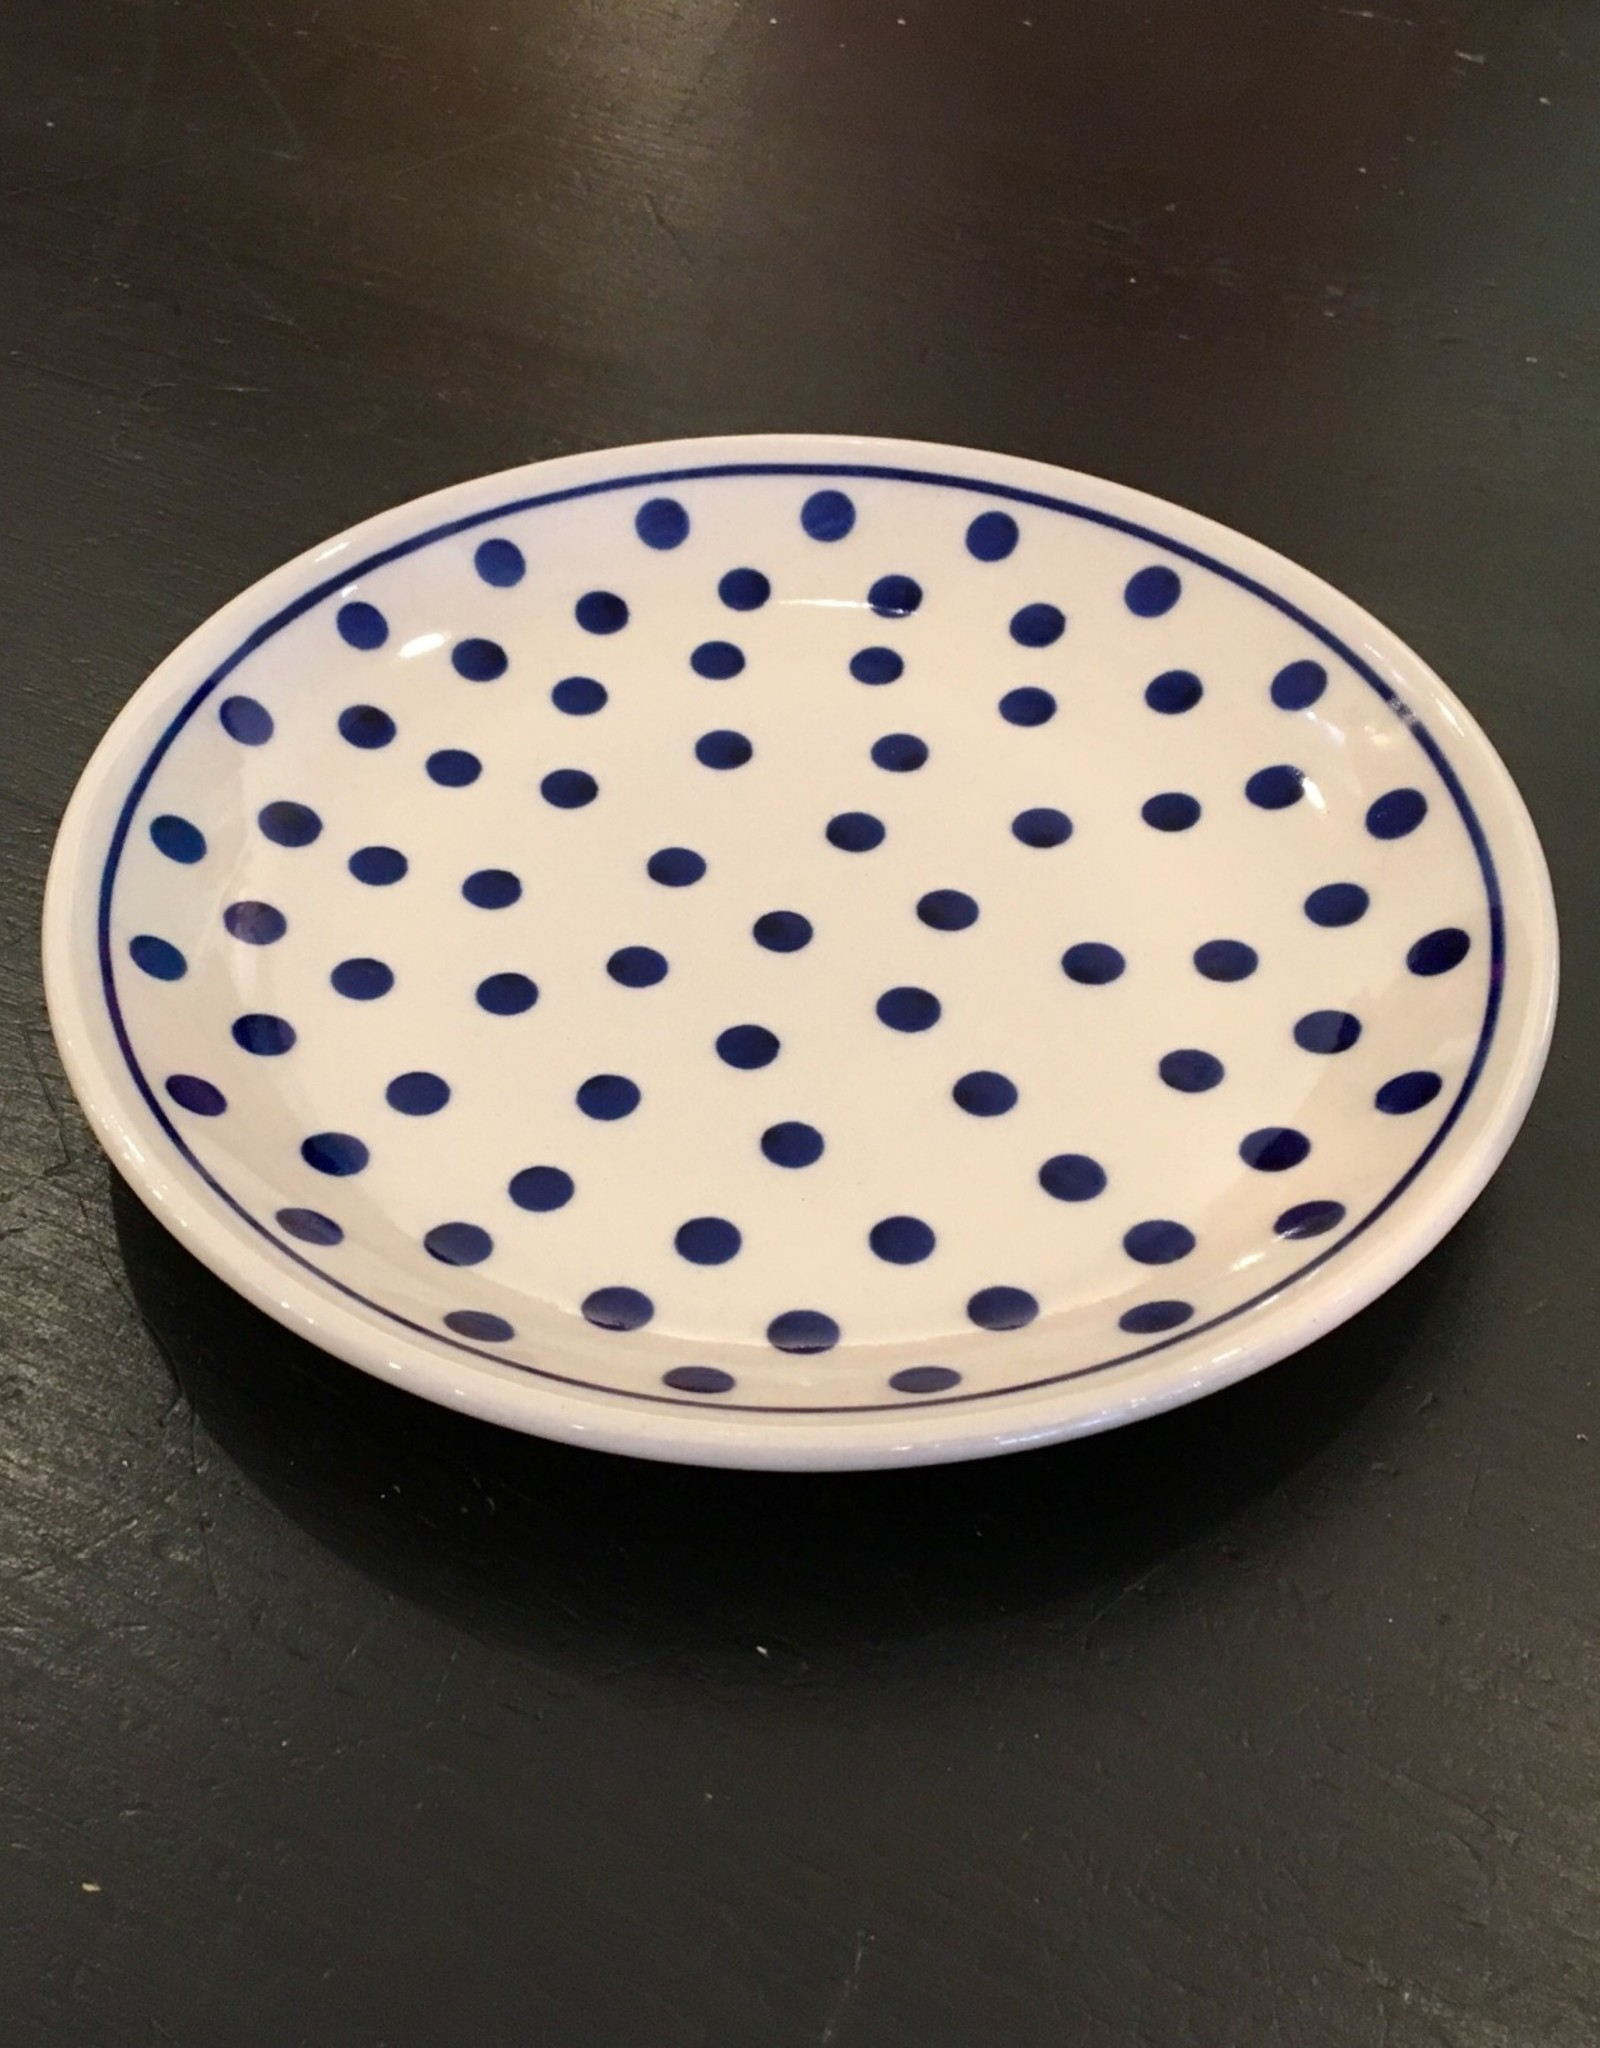 Salad Plate - White/Blue Dots White Rim